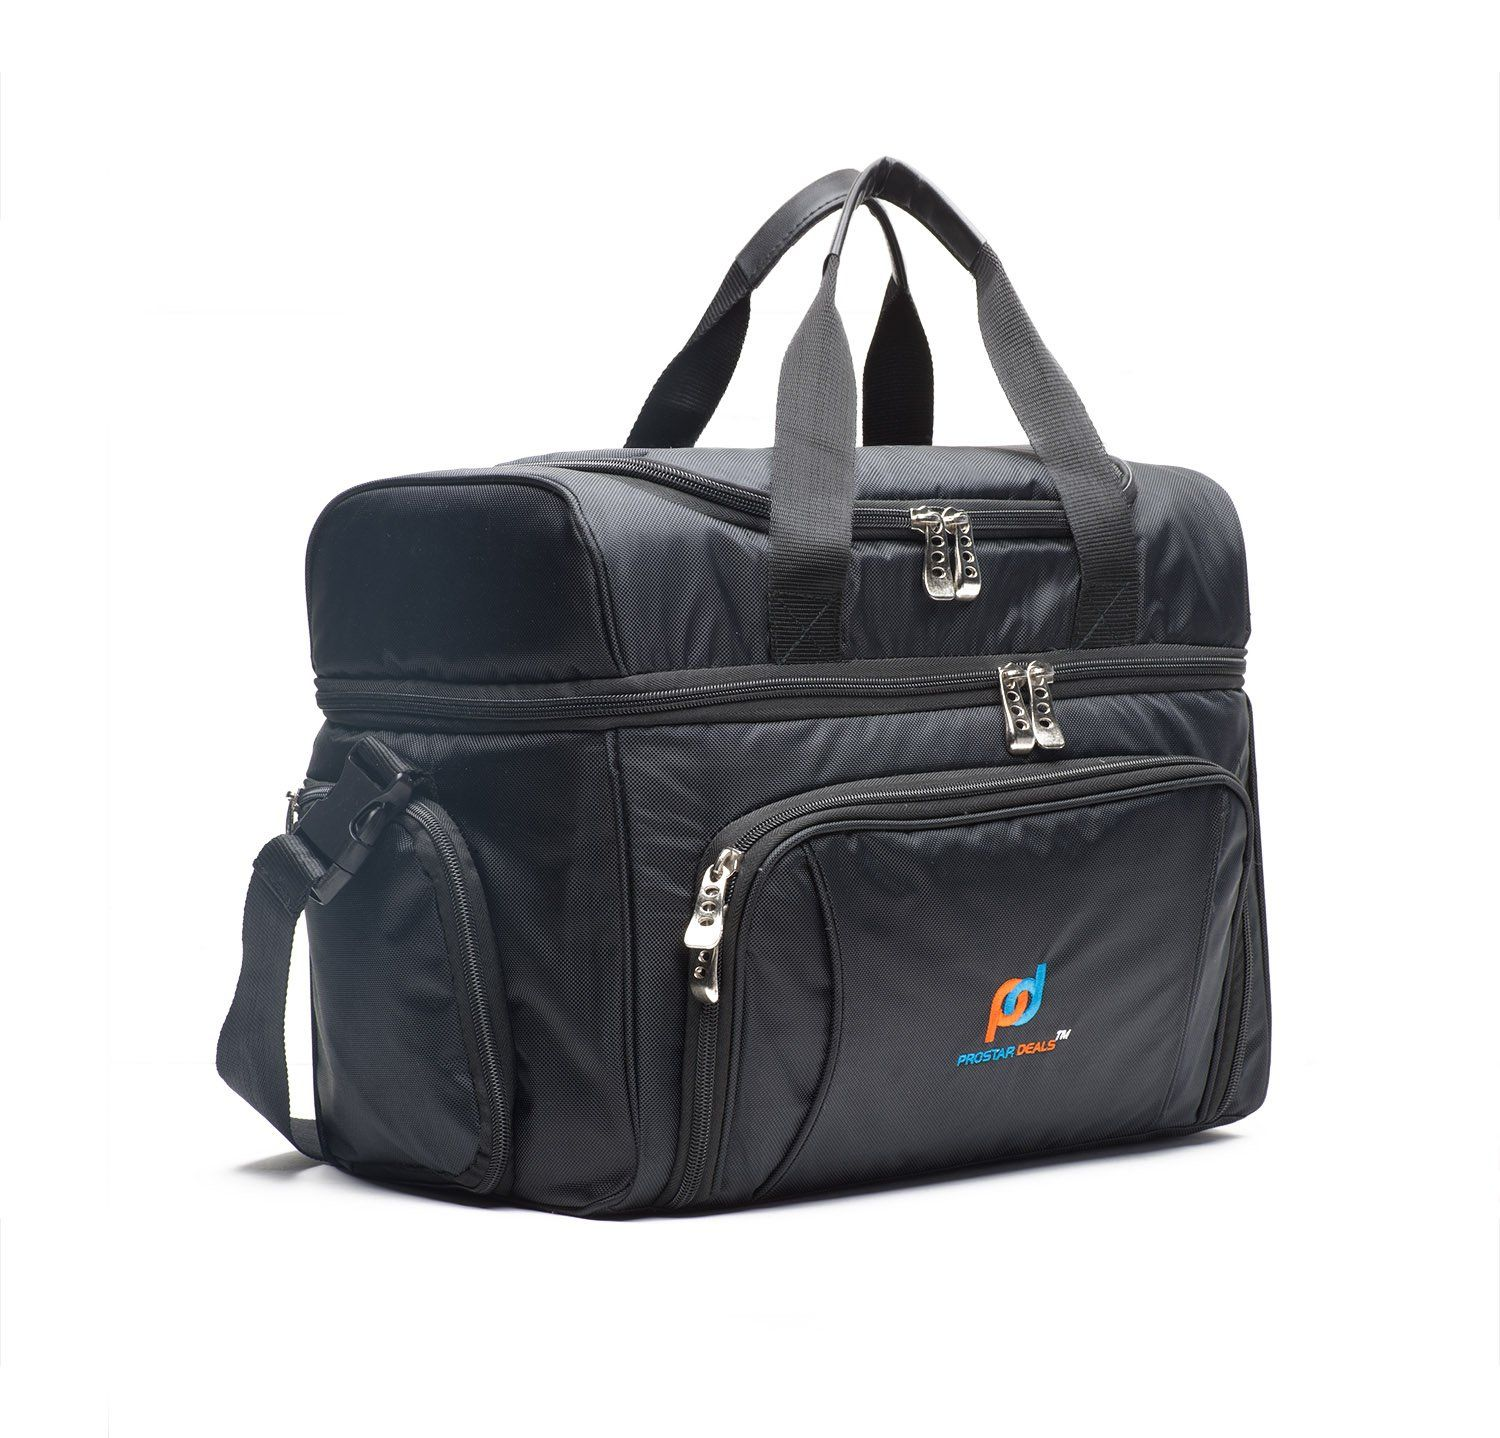 Large Heavy Duty Insulated Cooler Bag Made From Strong 840d Polyester Fabric And Thick Peva Lining Lunch Box To Keep Your Food Cold Hot